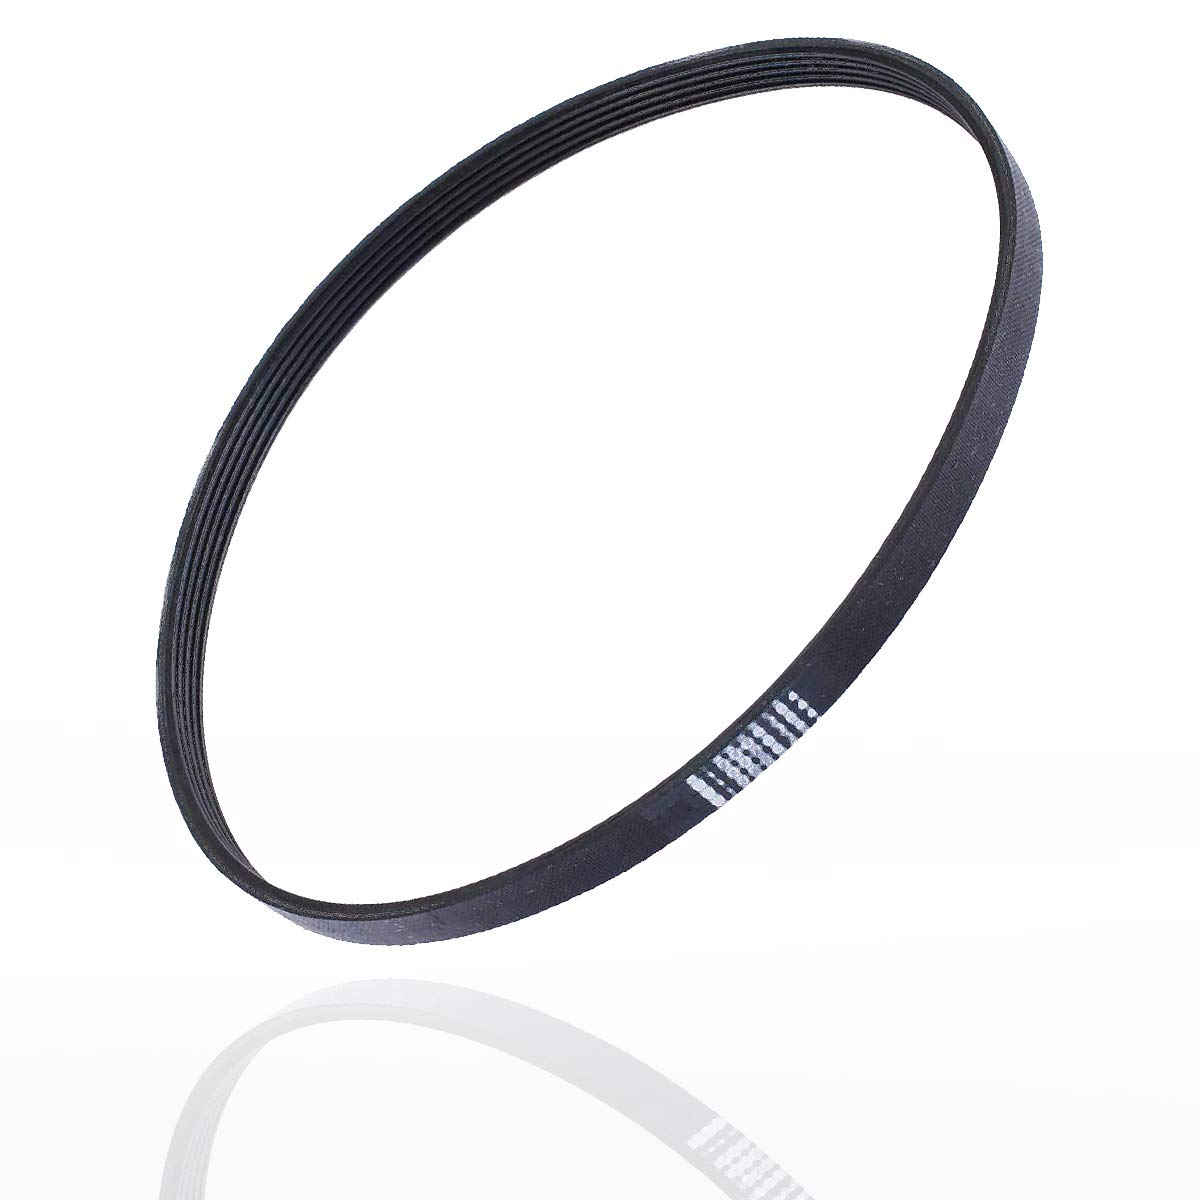 Poweka W10006384 Washer Drive Belt Replacement part - Exact Fit for Whirlpool & Kenmore Washing Machine -Replace AP6014712 PS11747978 WPW10006384